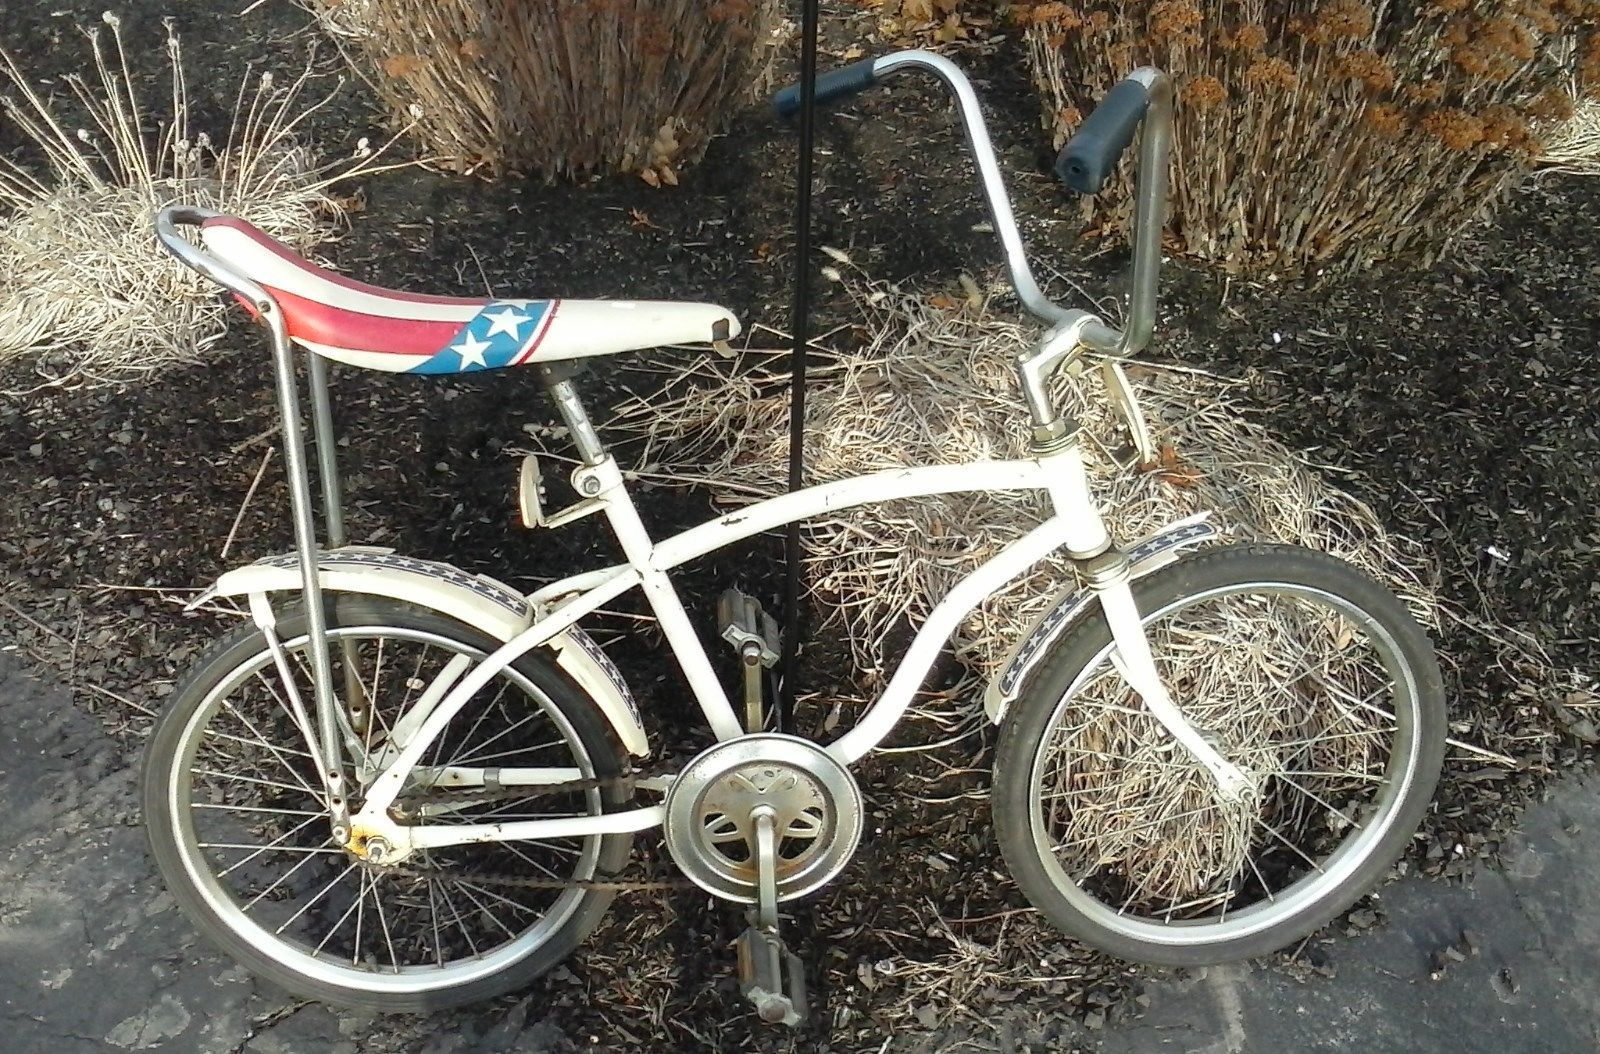 Huffy huffman evel knievel bananna seat bicycle restore project ebay